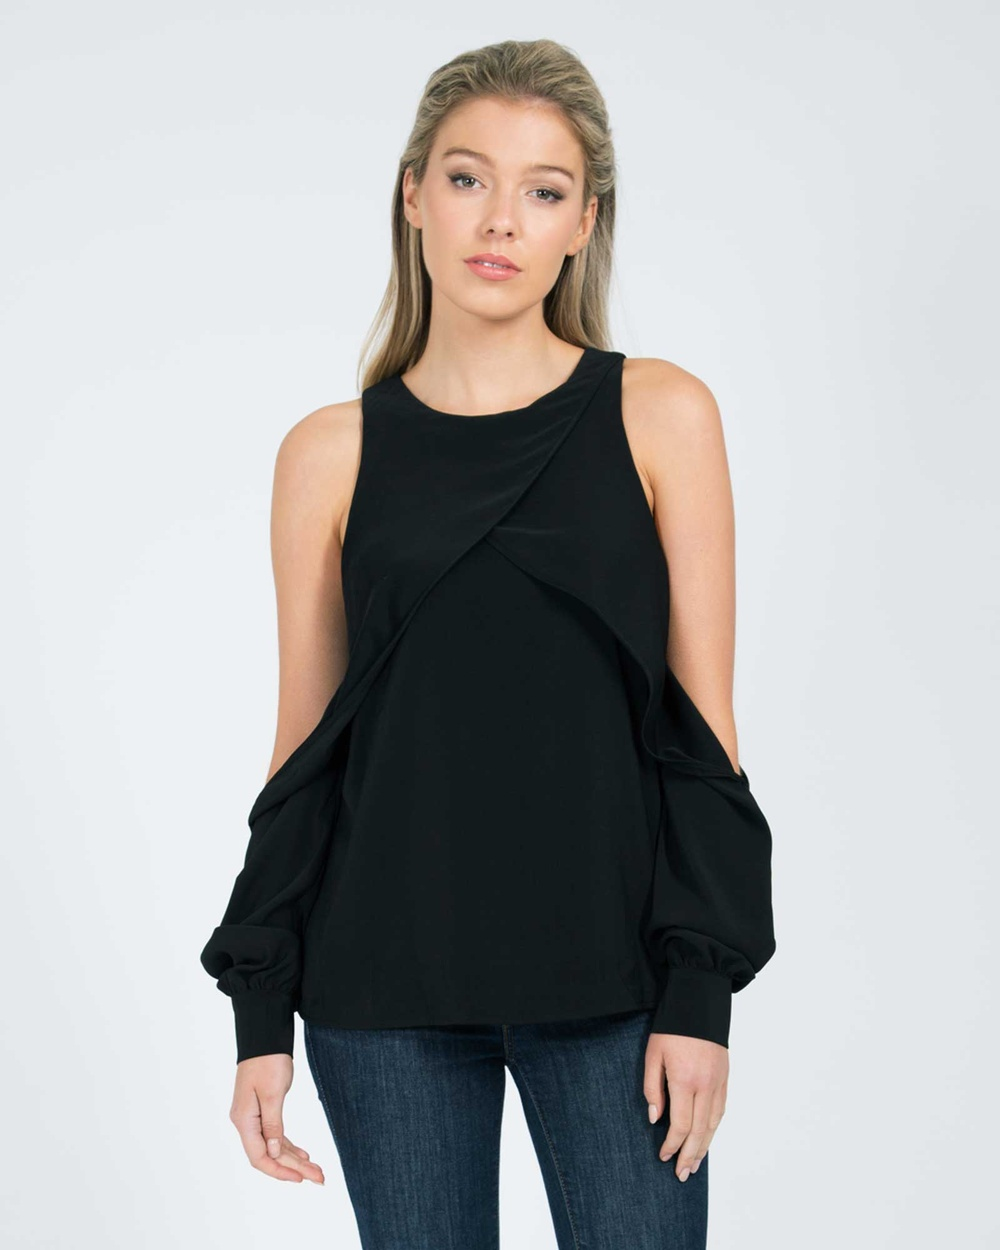 MVN Side Walk Open Shoulder Top Tops Black Side Walk Open Shoulder Top